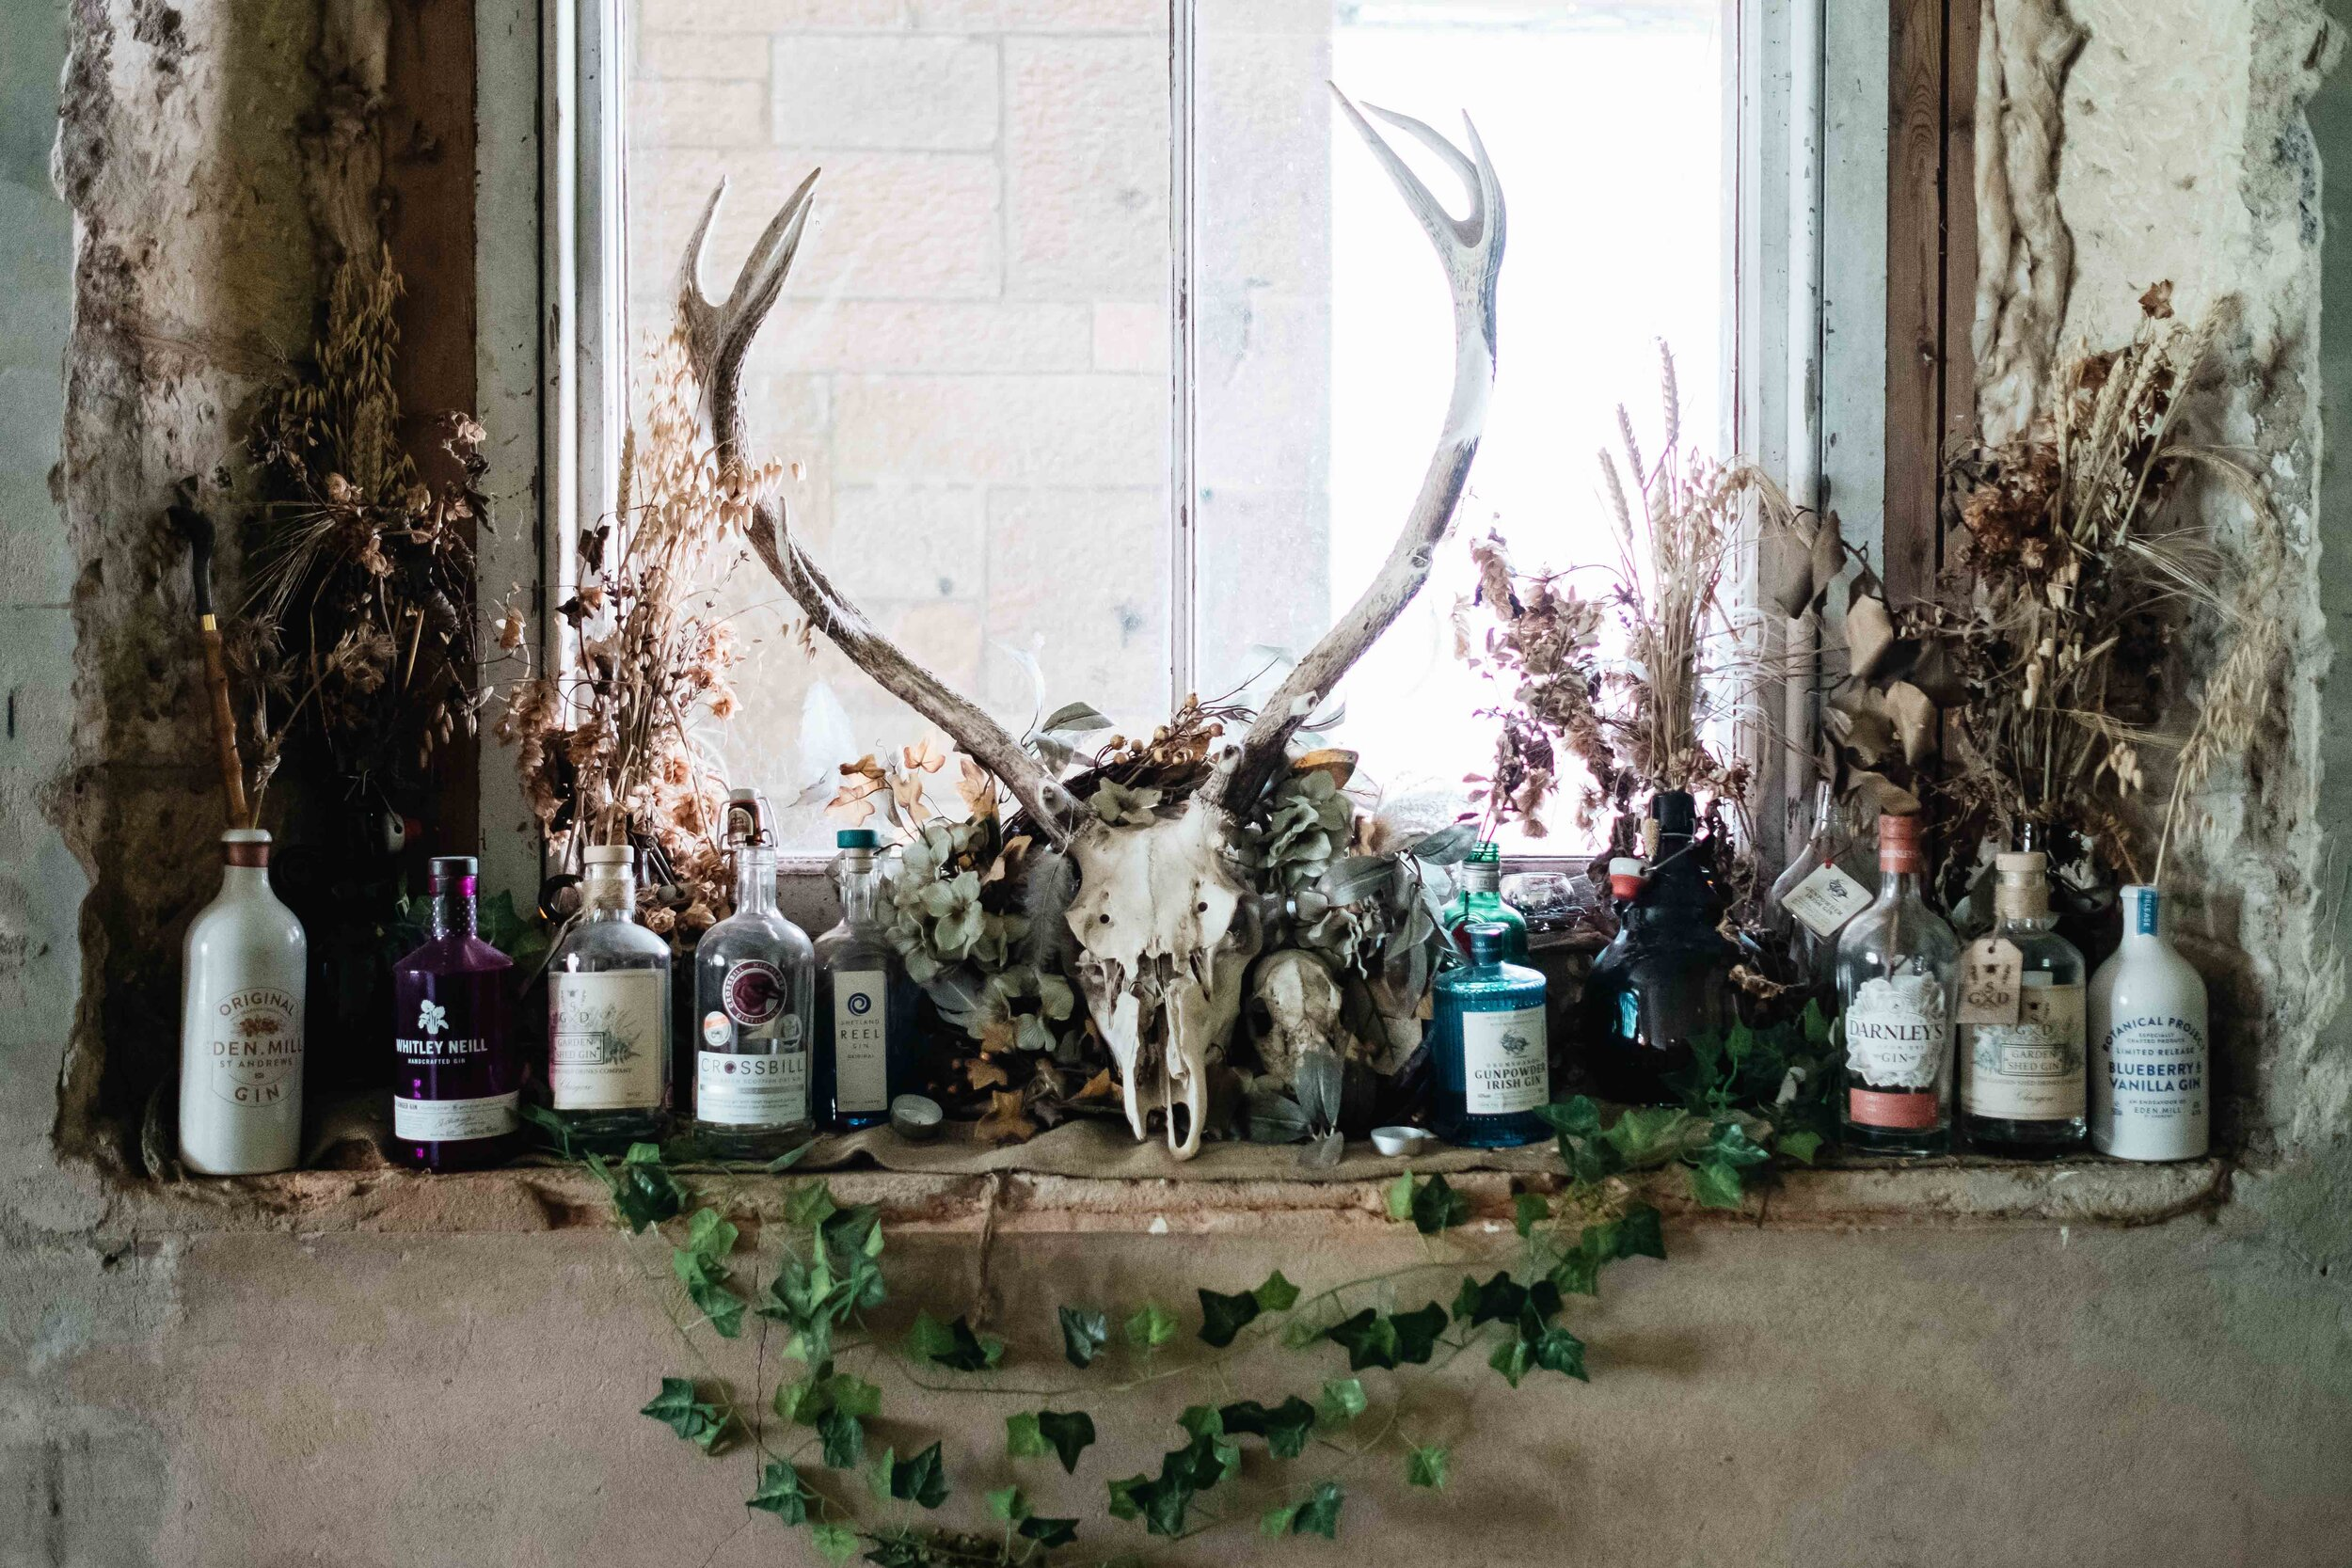 A stag's head is in the middle of the window sill of the Cambolicious bar area and is surrounded by Gin bottles.